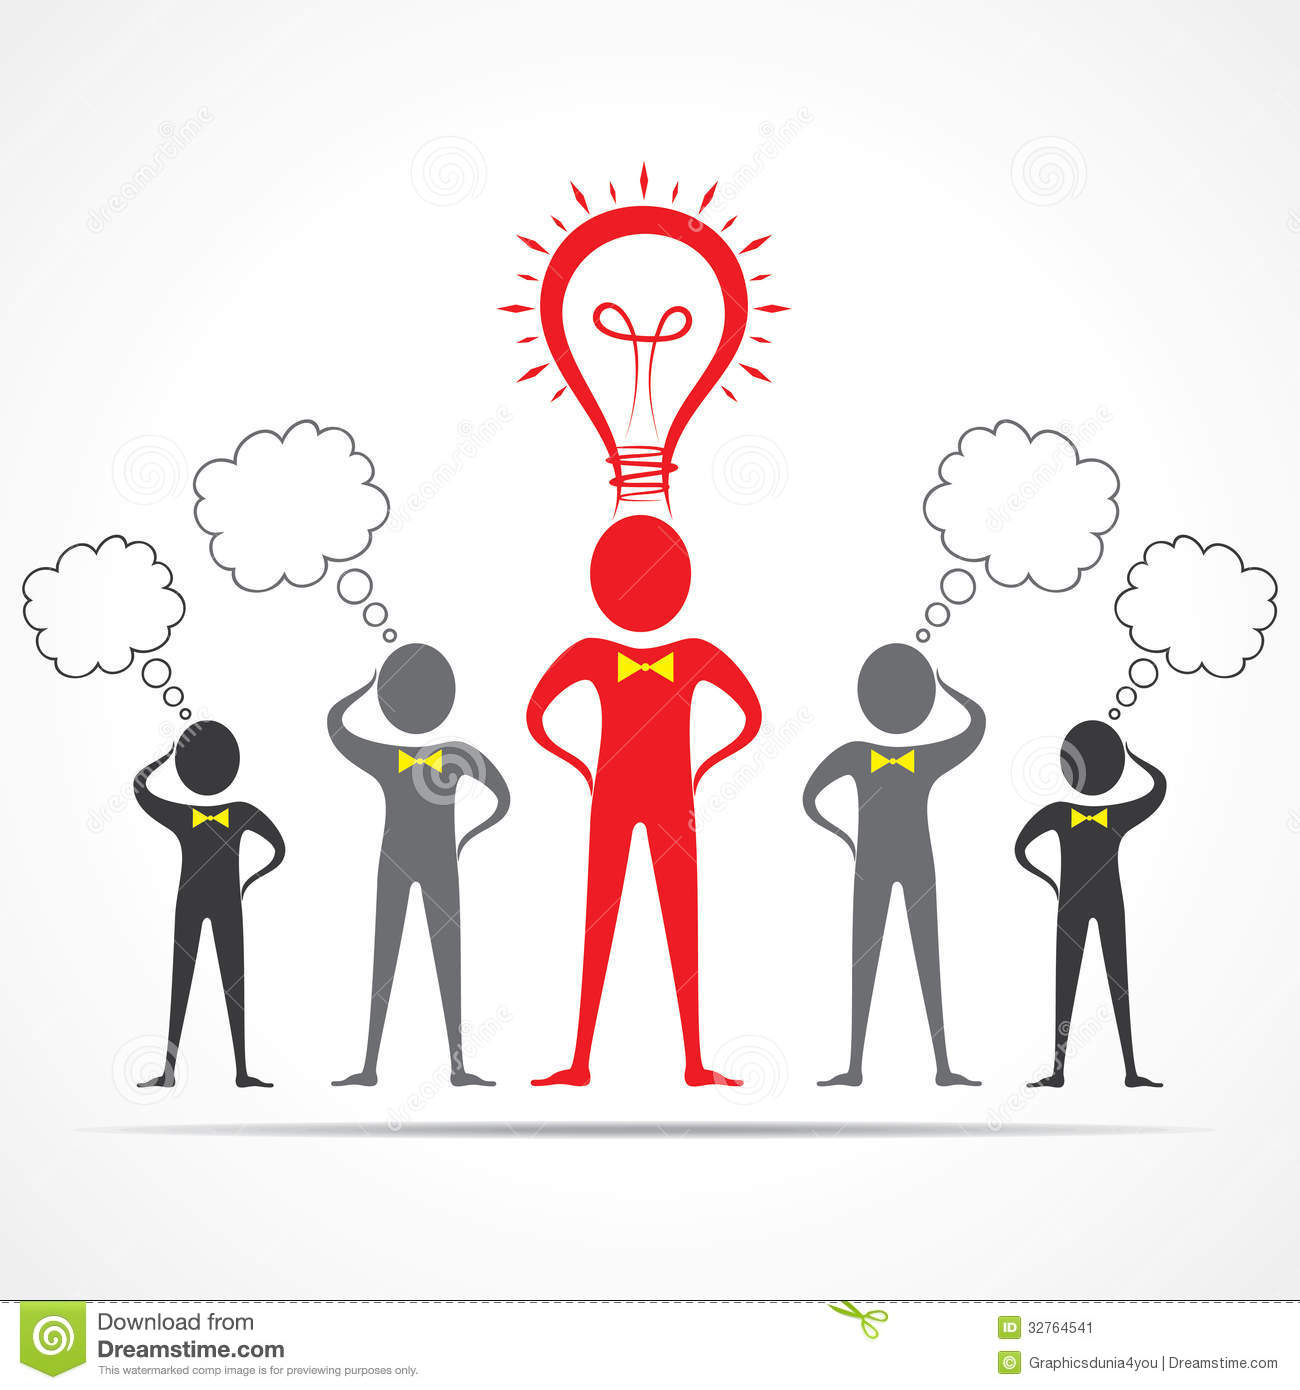 team in confusion and leader having idea concept stock thumbs up clipart cars thumbs up clip art free